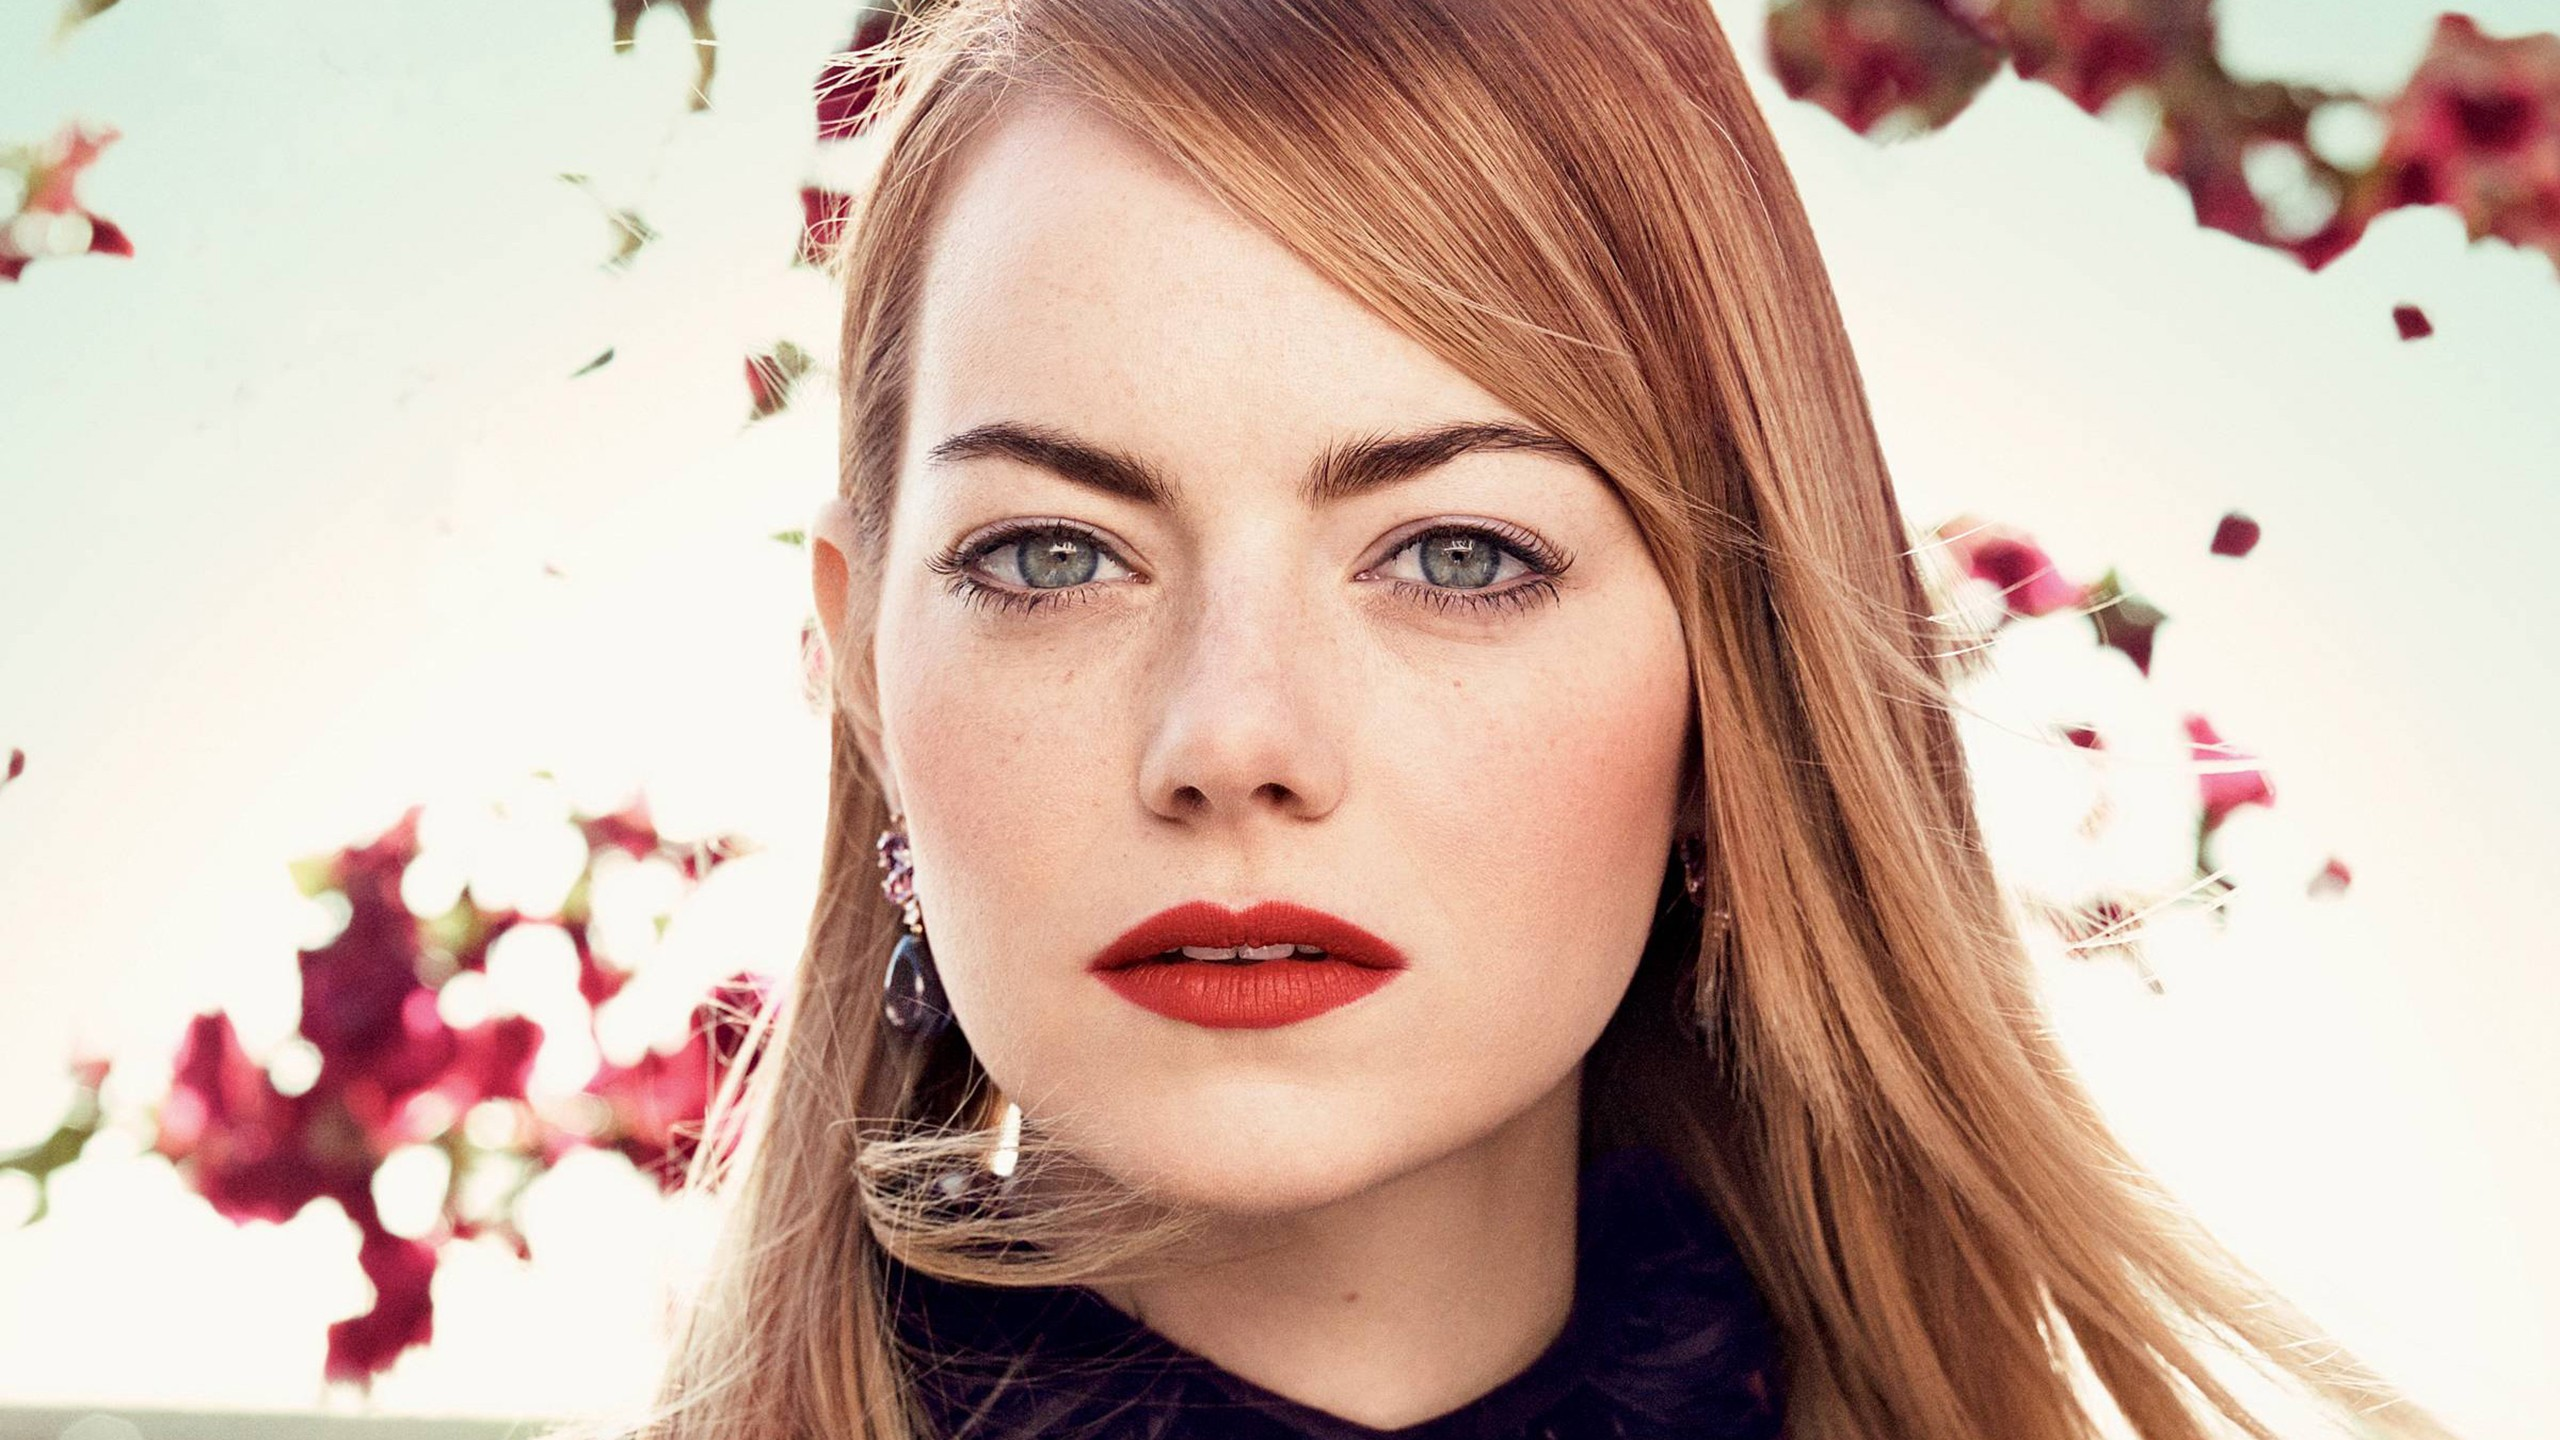 Girl Wallpaper Iphone 4 Emma Stone Vogue 2018 Wallpapers Hd Wallpapers Id 23467